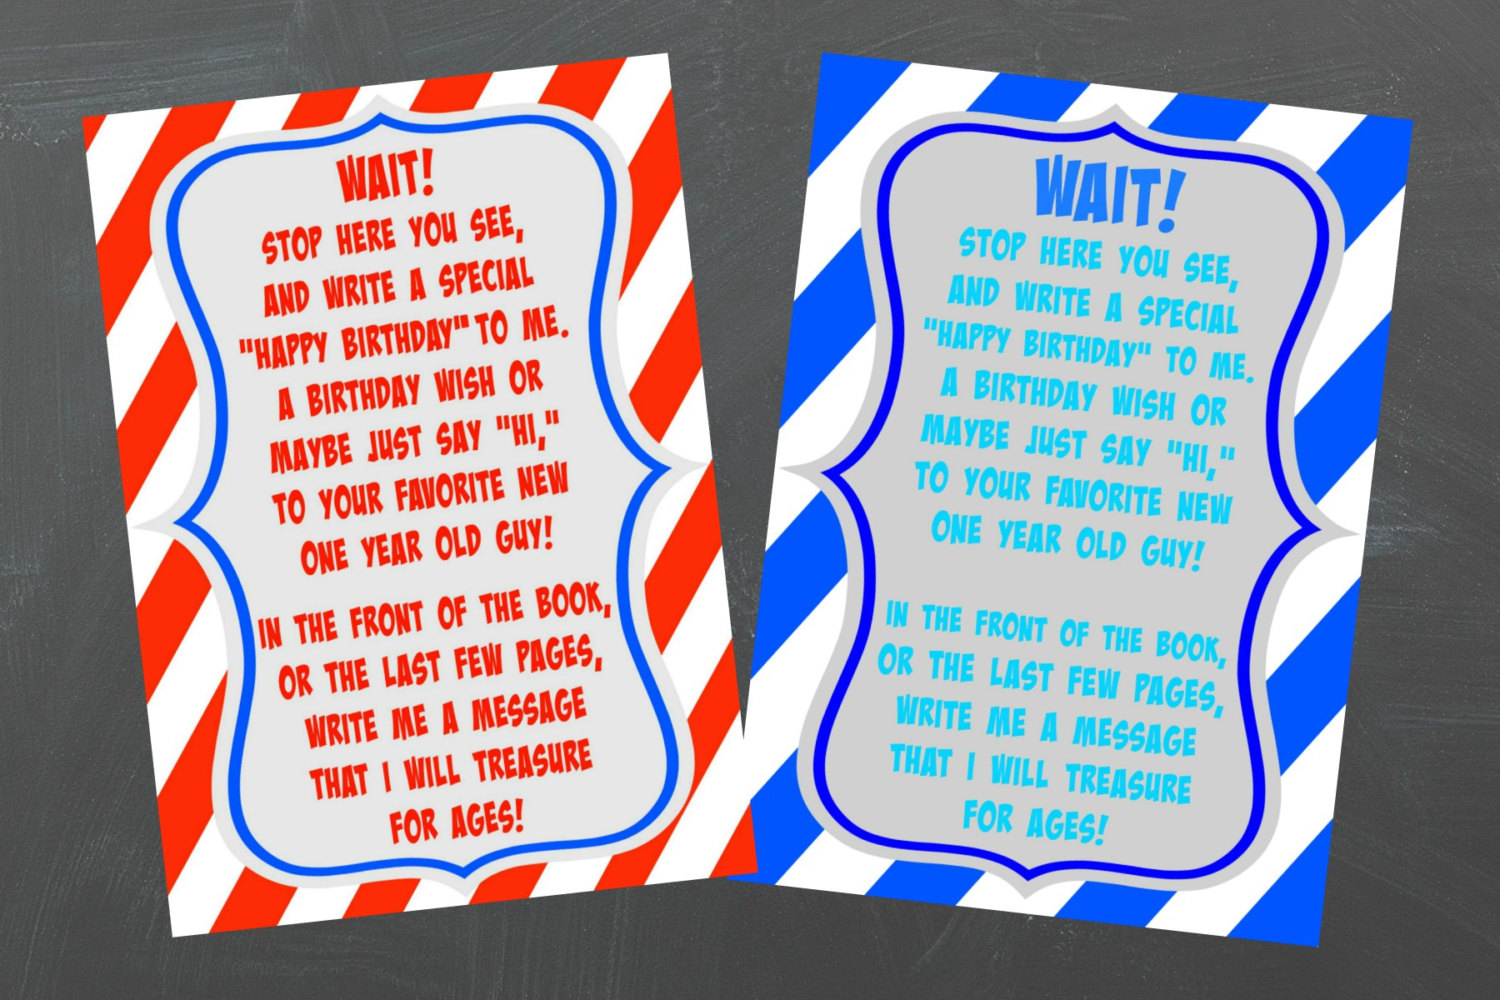 dr seuss first birthday poem ; dr-seuss-birthday-book-poem-il-fullxfull